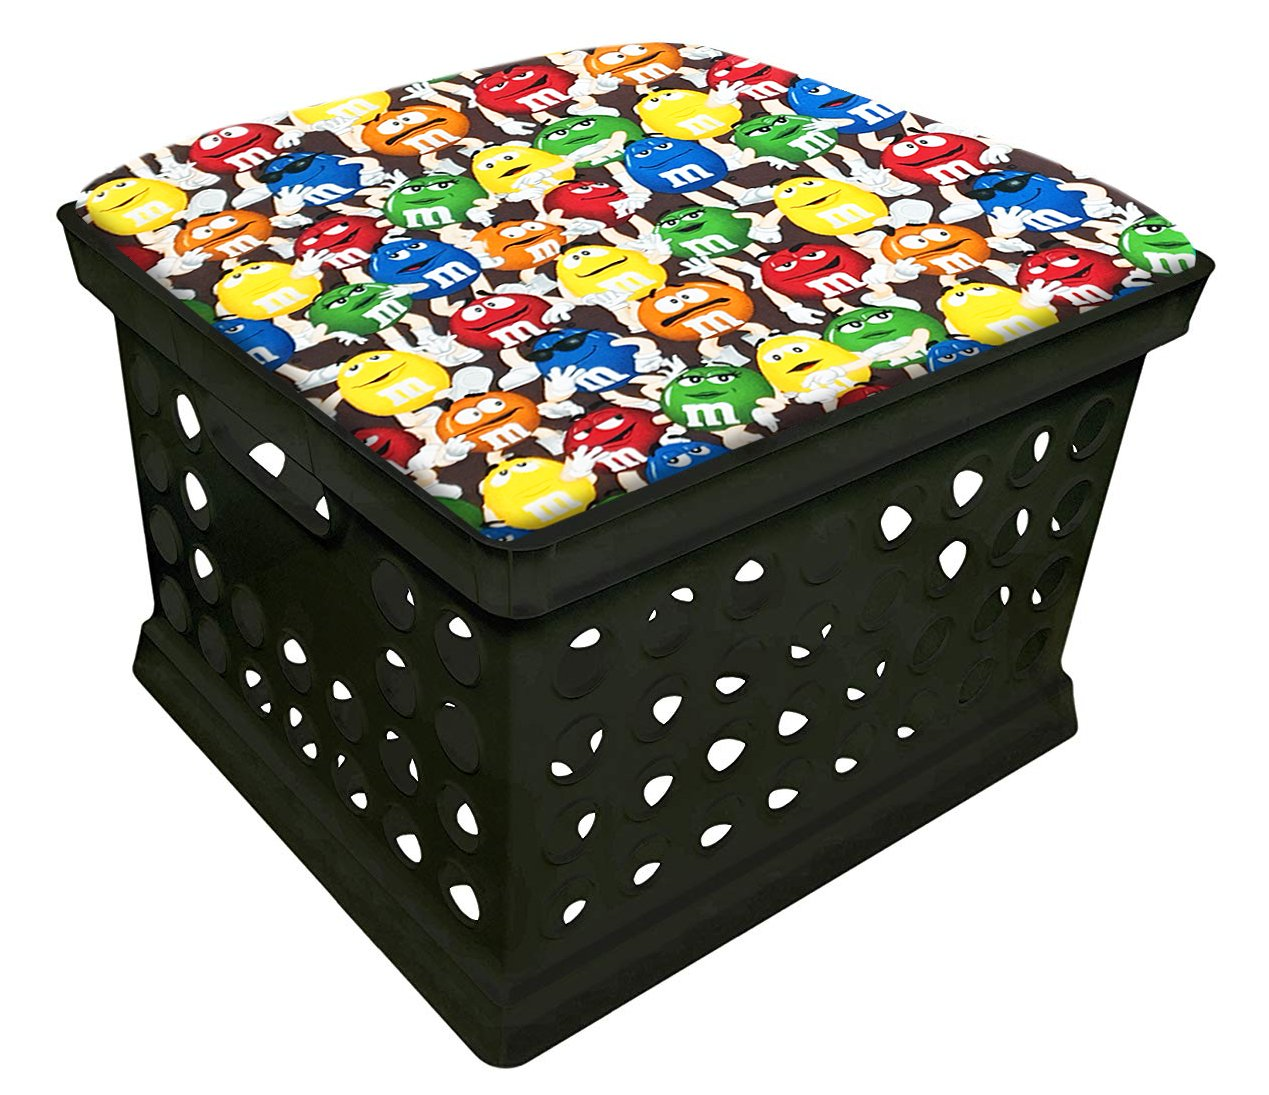 Black Utility Crate Storage Container Ottoman Bench Stool for Office/Home/School/Preschools with Your Choice of Seat Cushion Theme and a Free Flashlight! (M & M Big Fun)